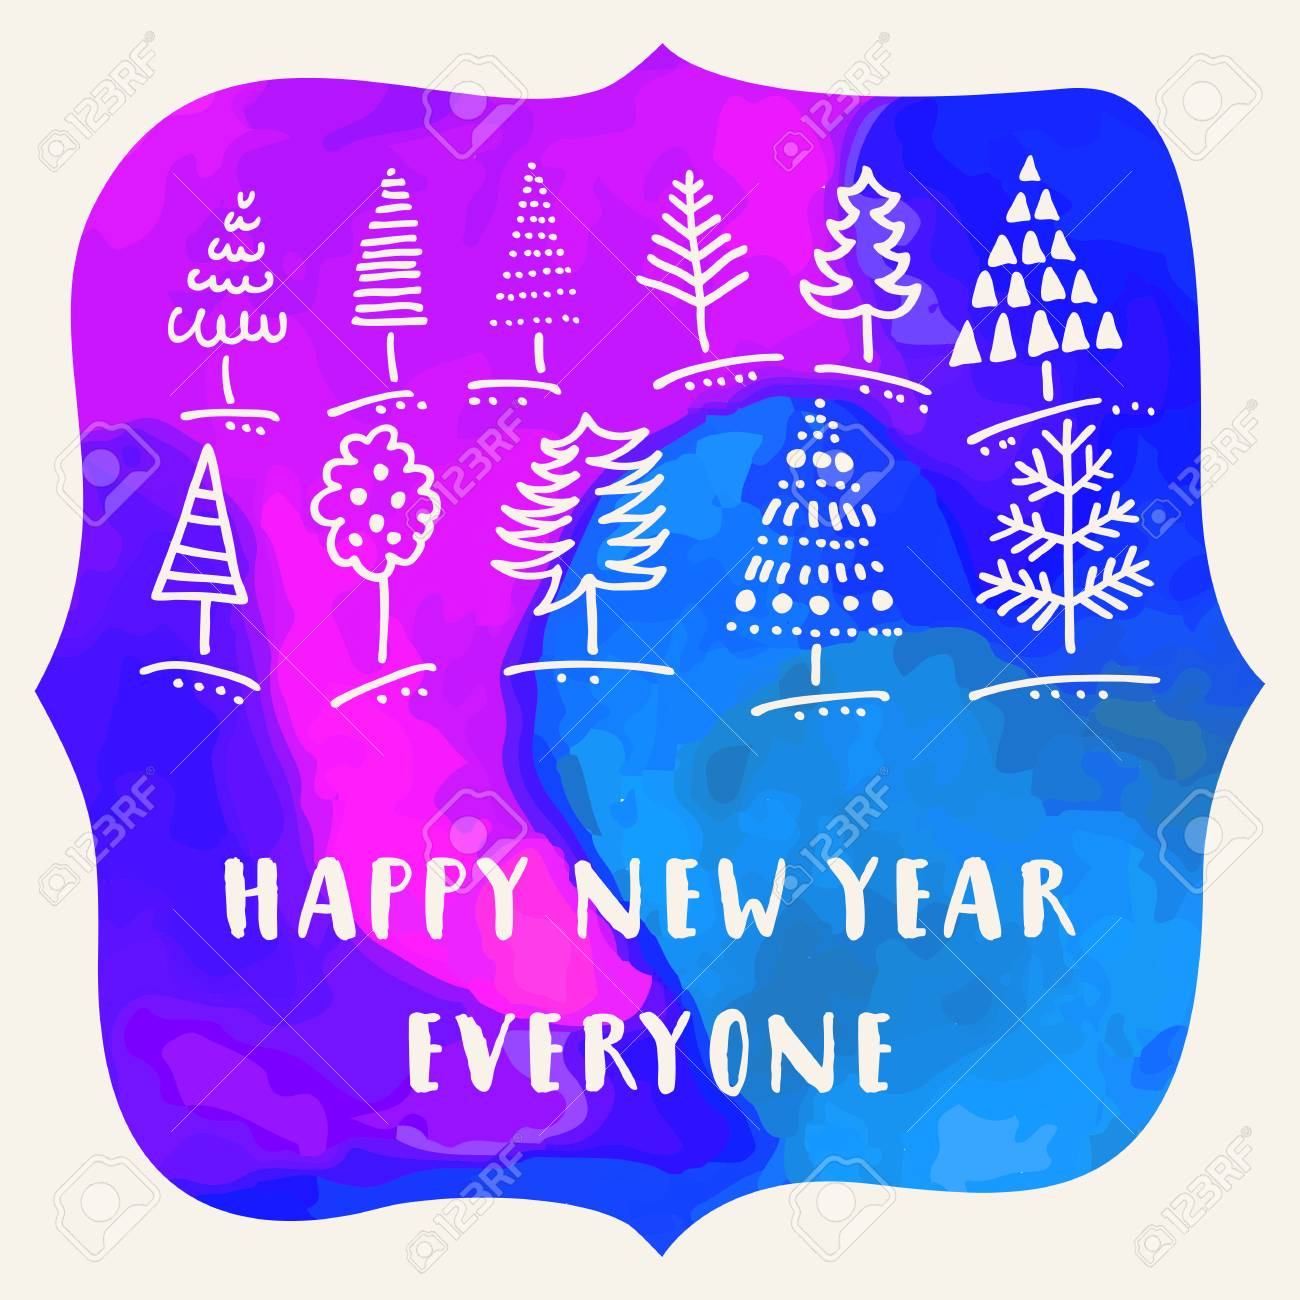 happy new year everyone creative artistic hand drawn greeting card on a blue watercolor background